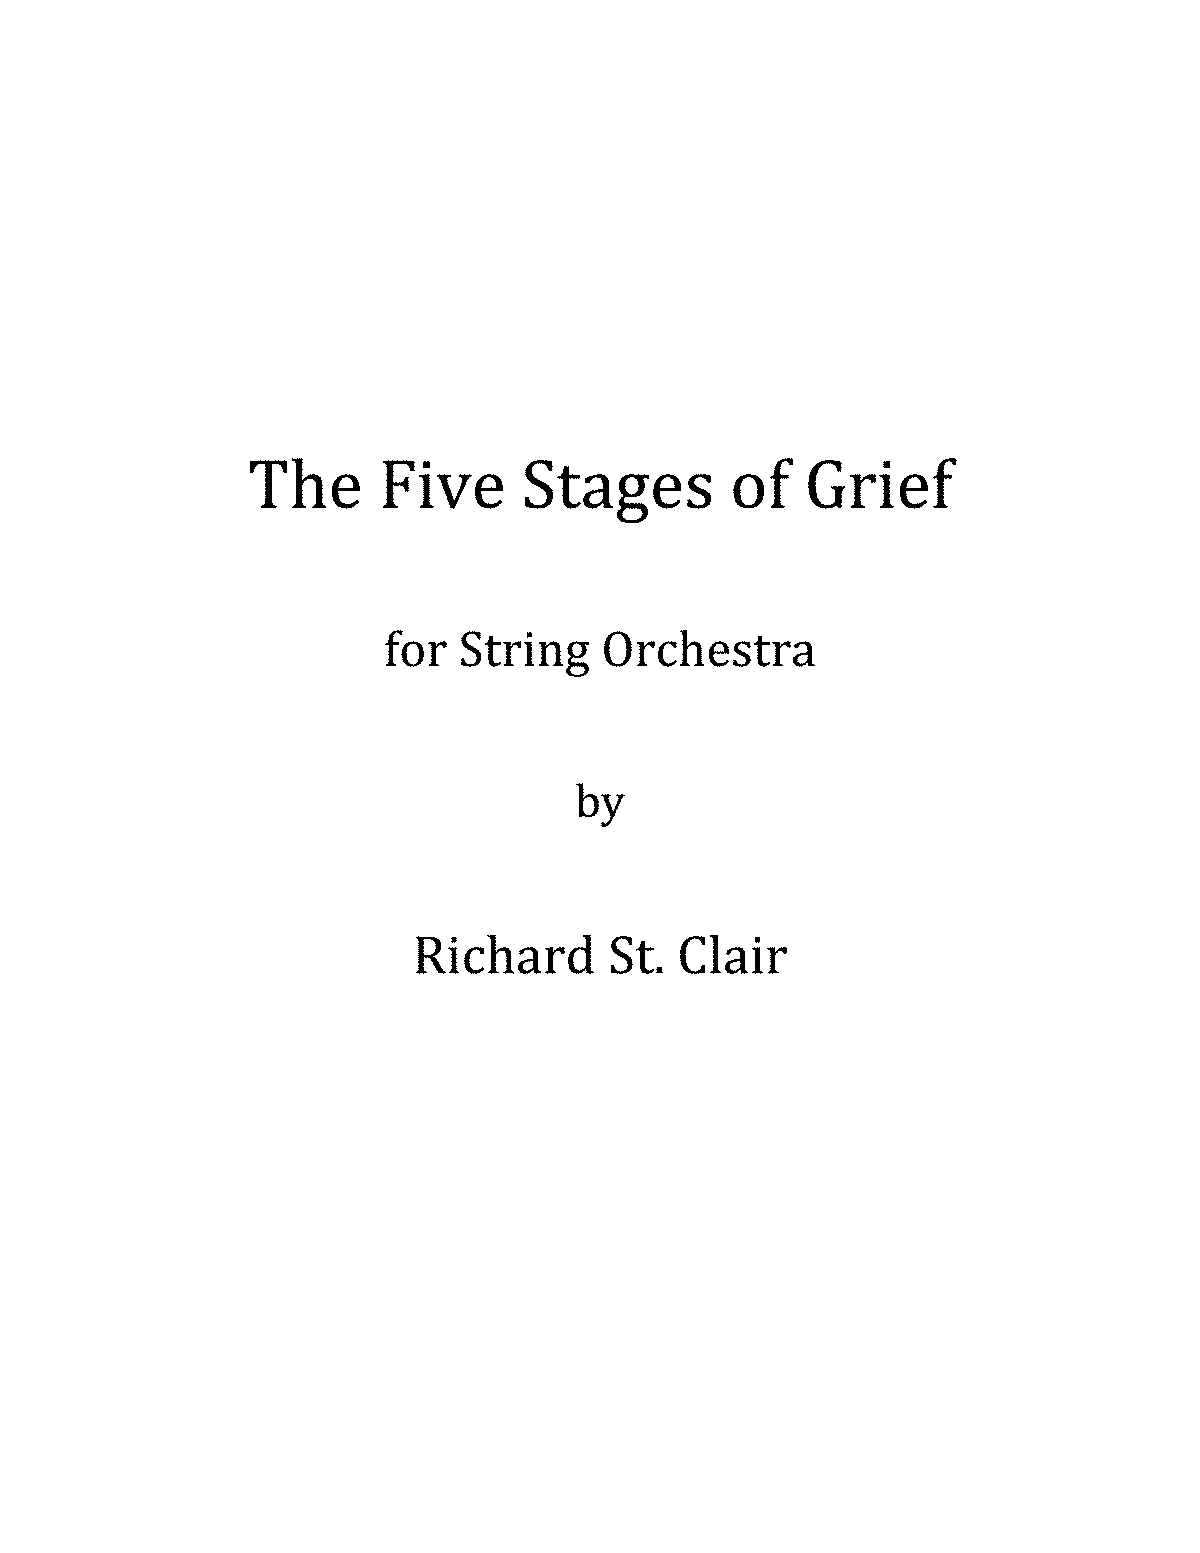 PMLP523177-The Five Stages of Grief.pdf